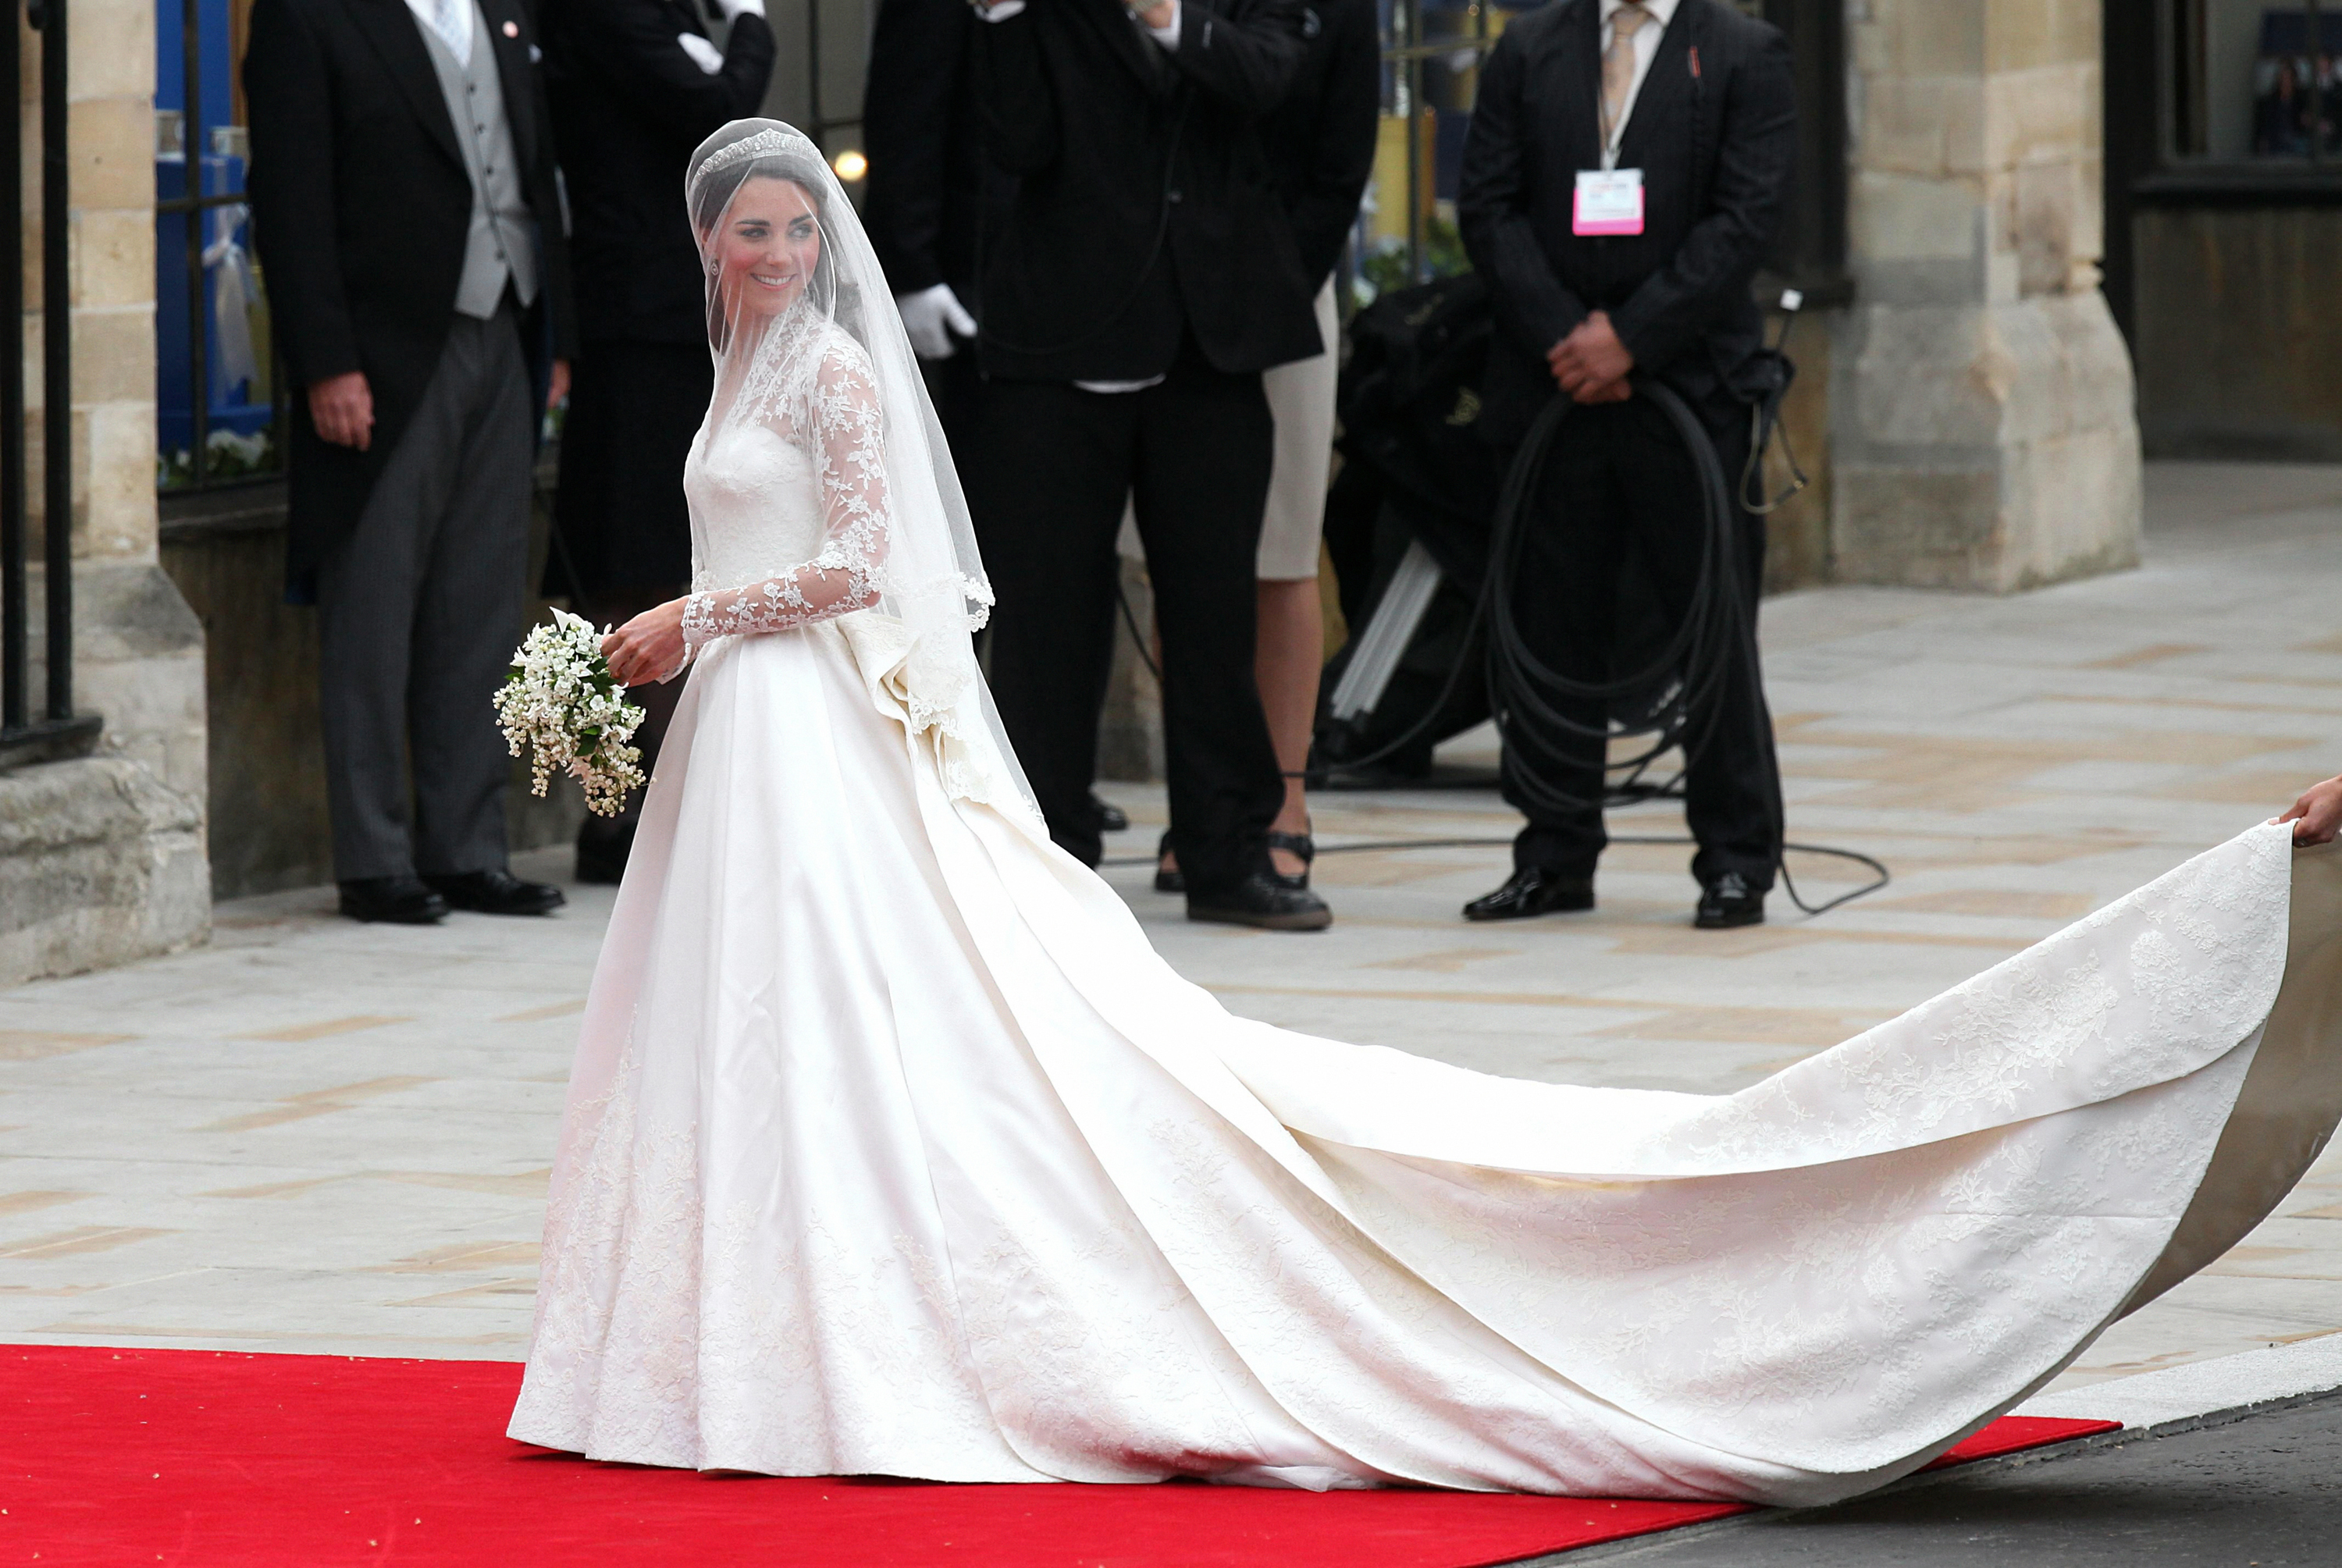 Kate Middleton arrives at Westminster Abbey, London, before her marriage to Prince William.